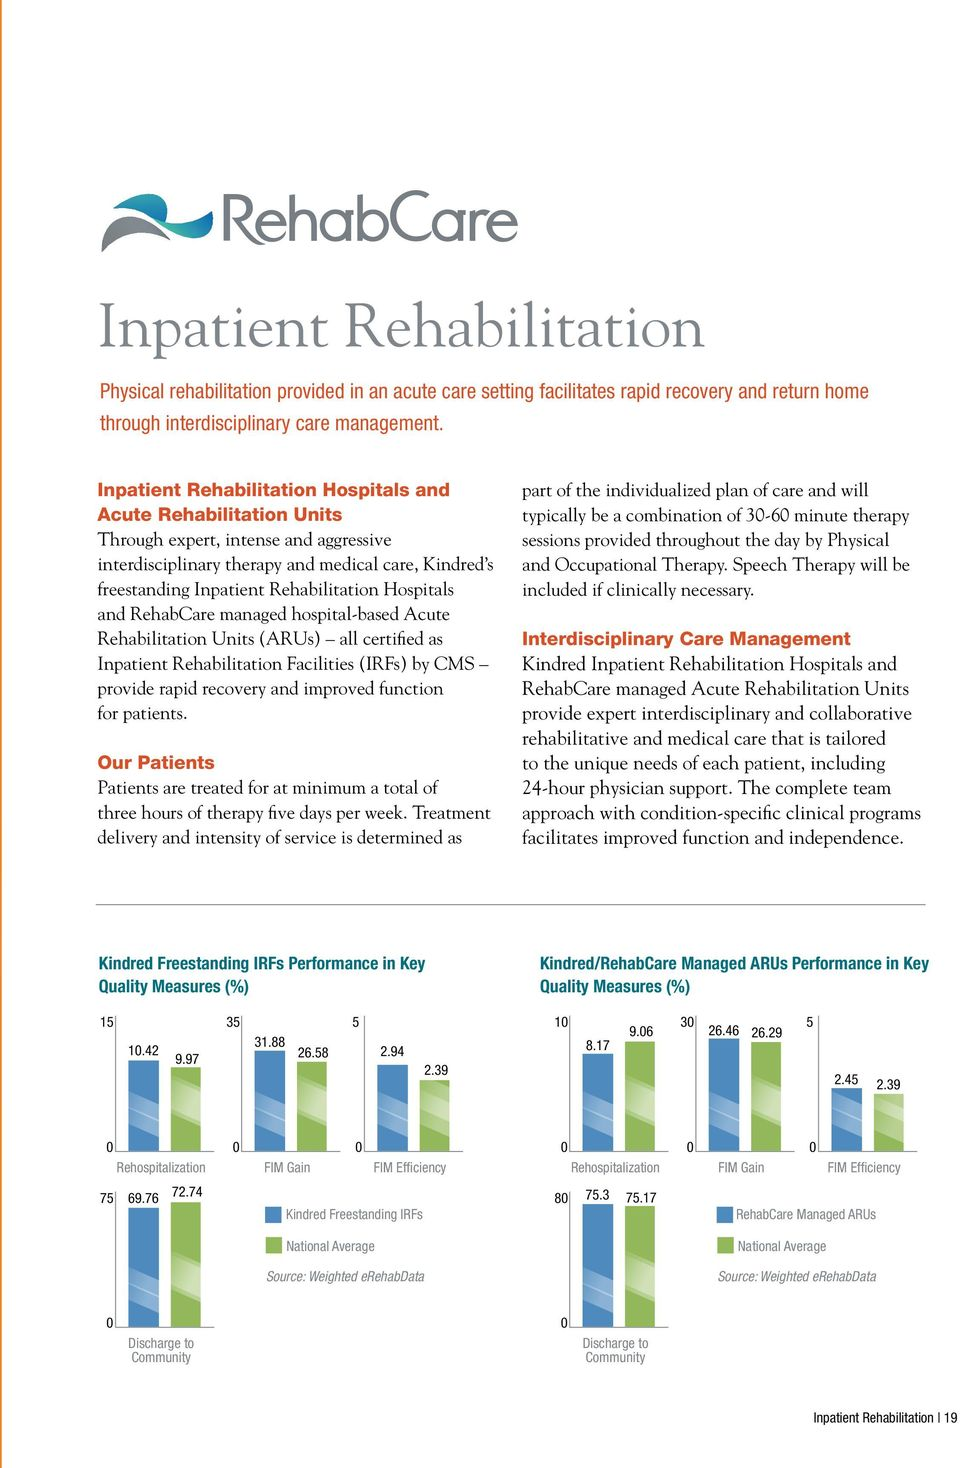 Hospitals and RehabCare managed hospital-based Acute Rehabilitation Units (ARUs) all certified as Inpatient Rehabilitation Facilities (IRFs) by CMS provide rapid recovery and improved function for